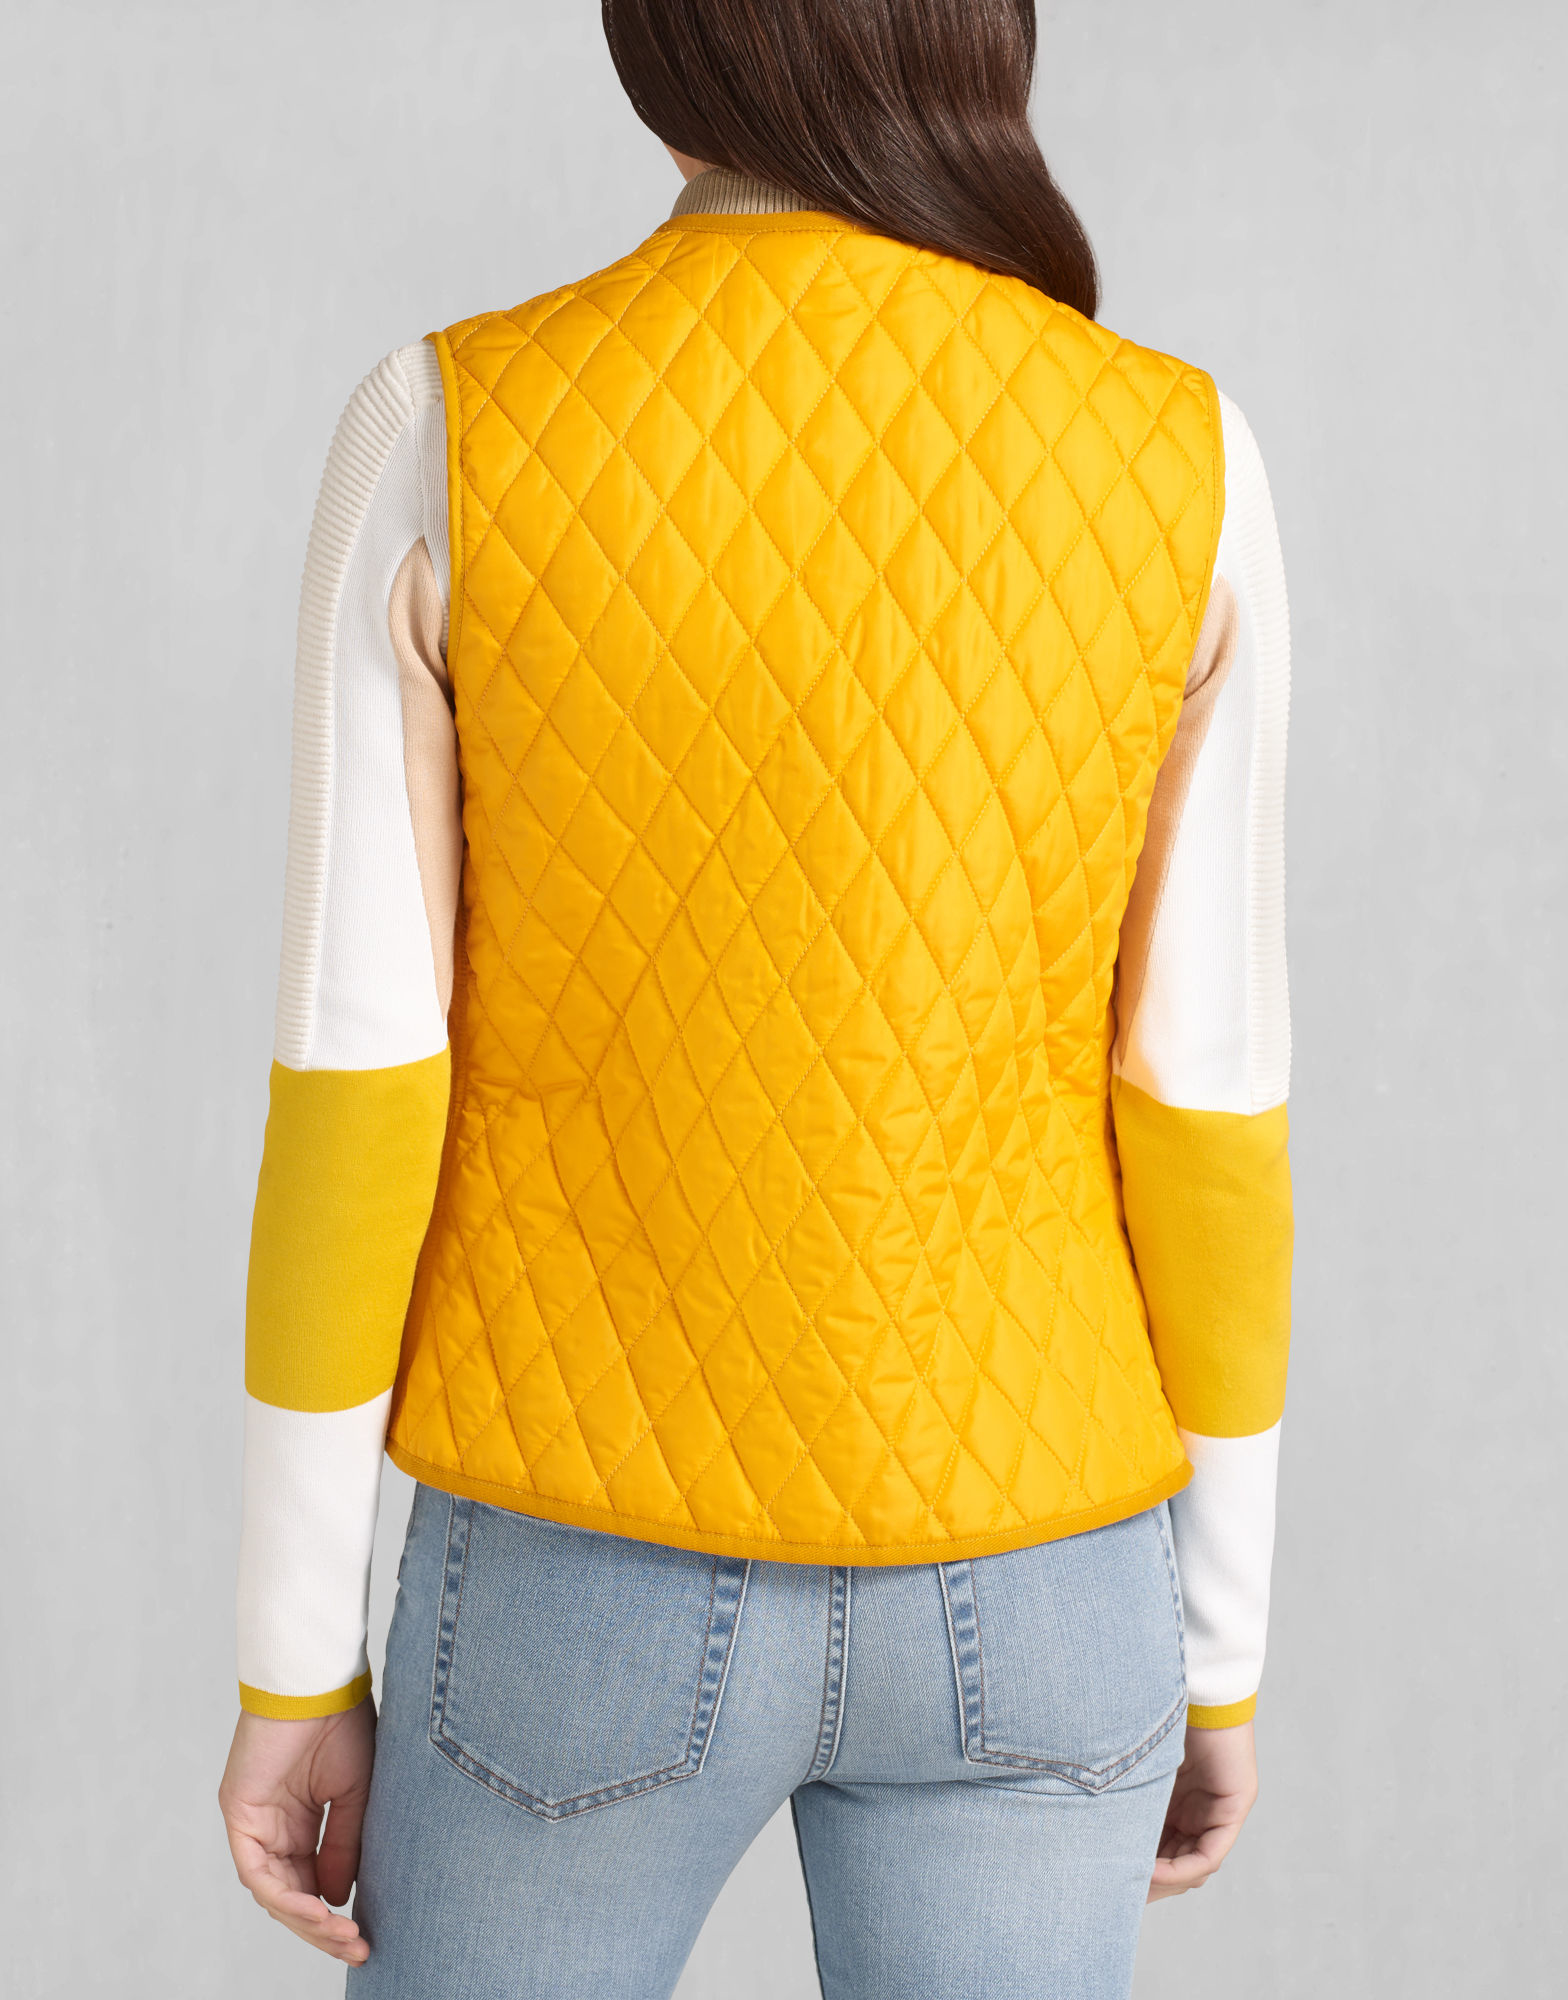 Belstaff Wickford Quilted Vest In Bright Mustard Lightweight ...